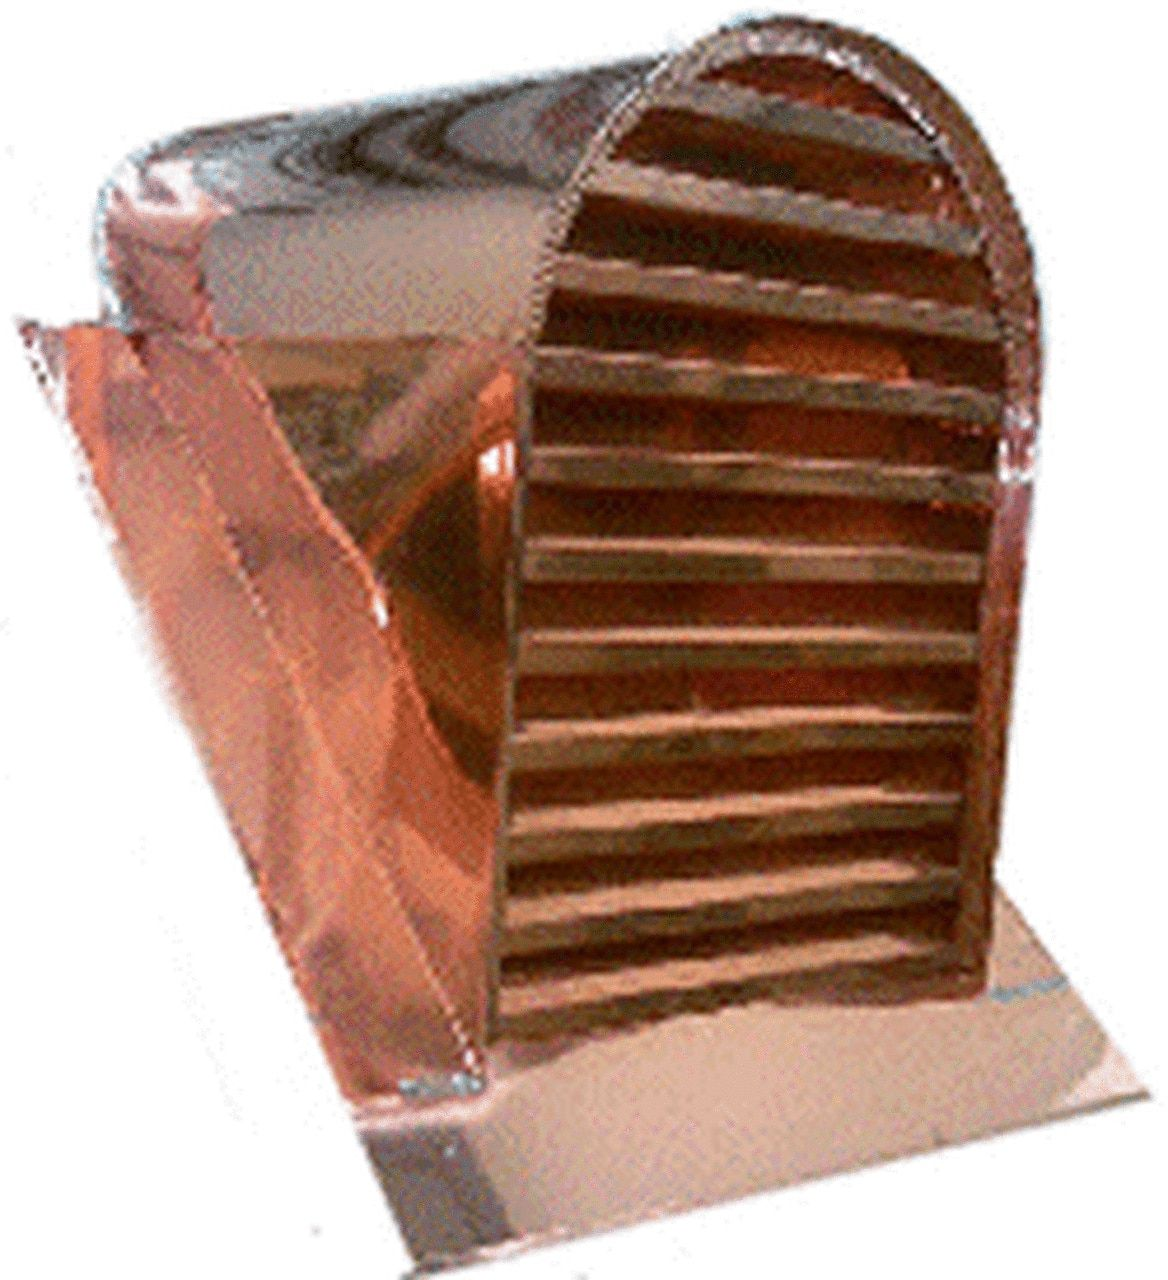 Copper Roof Vent Or Dormer 12x18 Tombstone In 2020 Copper Roof Roof Vents Dormers